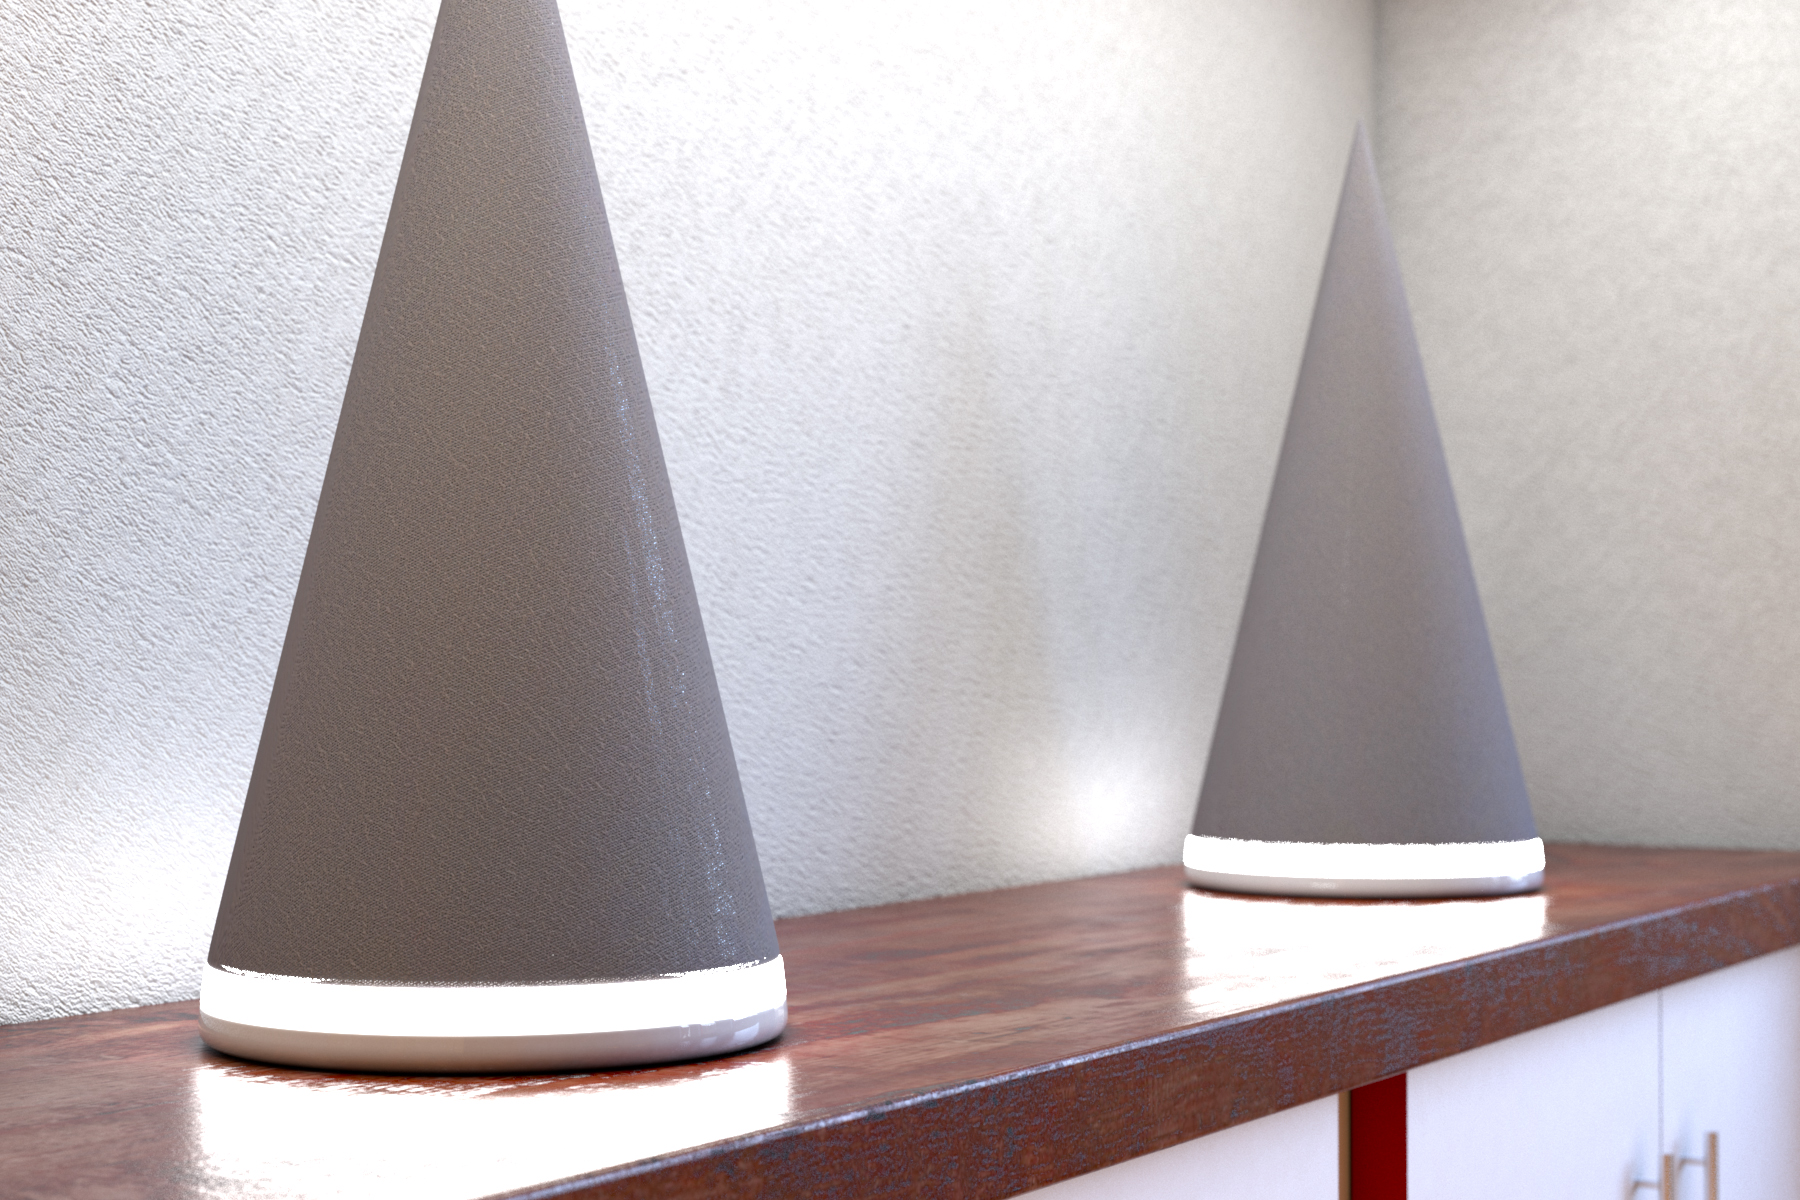 Speakers — 2 speakers (kind of like bluetooth speakers or something) with a ring light and a cloth material covering. I had to tweak the cloth texture from poliigon a little to make an opacity map which would allow the camera to see through that layer a little but. You can see a little plastic shining through.